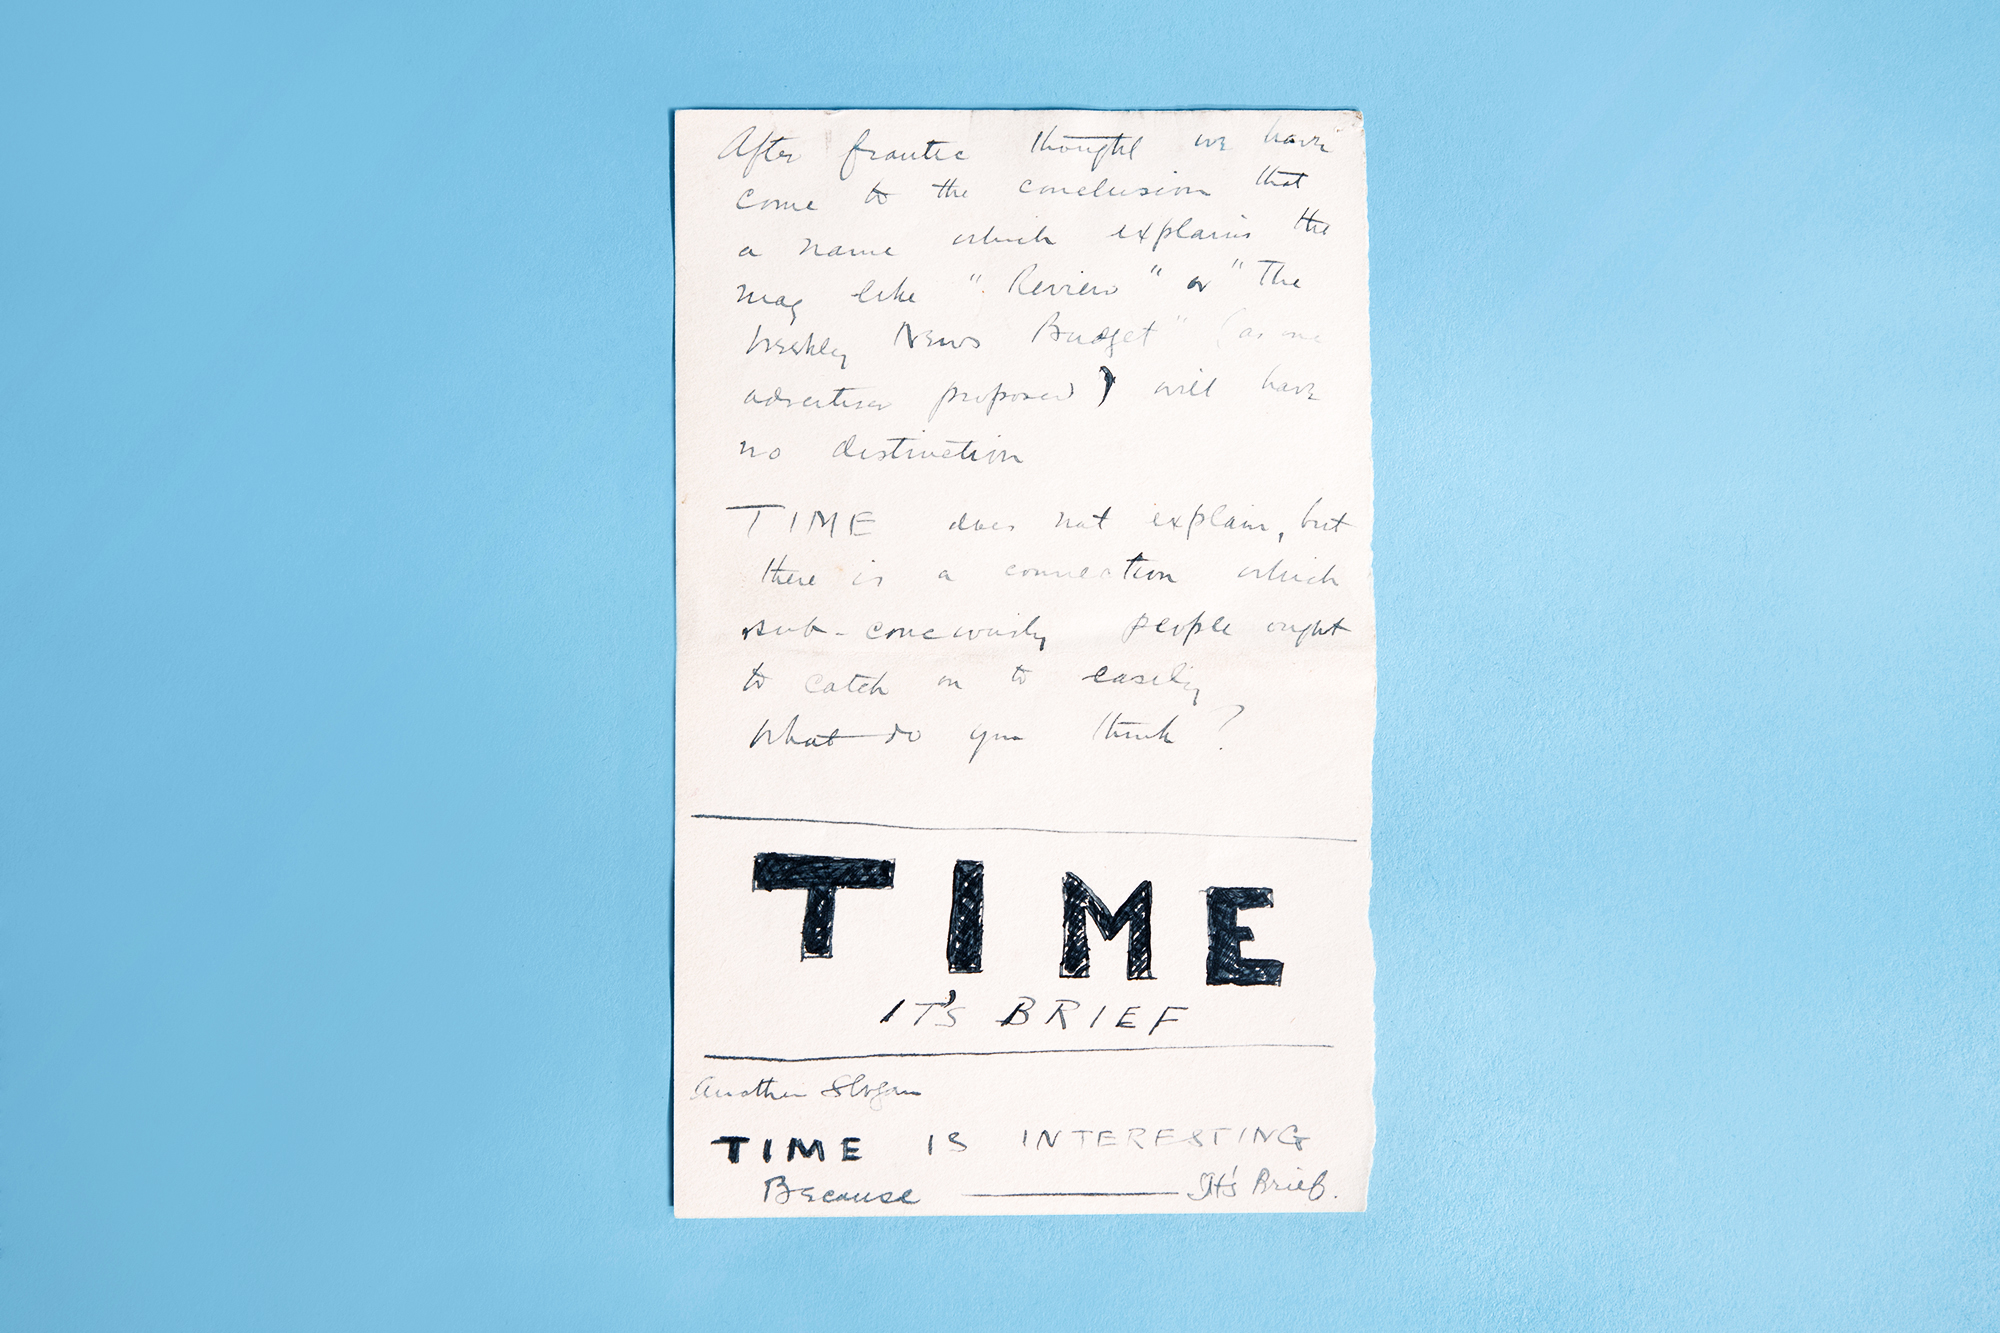 """Letter From Henry Luce to Parents: When TIME's co-founders Briton Hadden and Henry Luce were still in pre-production on the new kind of news magazine, they played around with a number of titles for their publication. Here, Luce tells his parents about the idea to call the magazine """"TIME,"""" and plays around with some slogans that would be used in later advertising campaigns."""